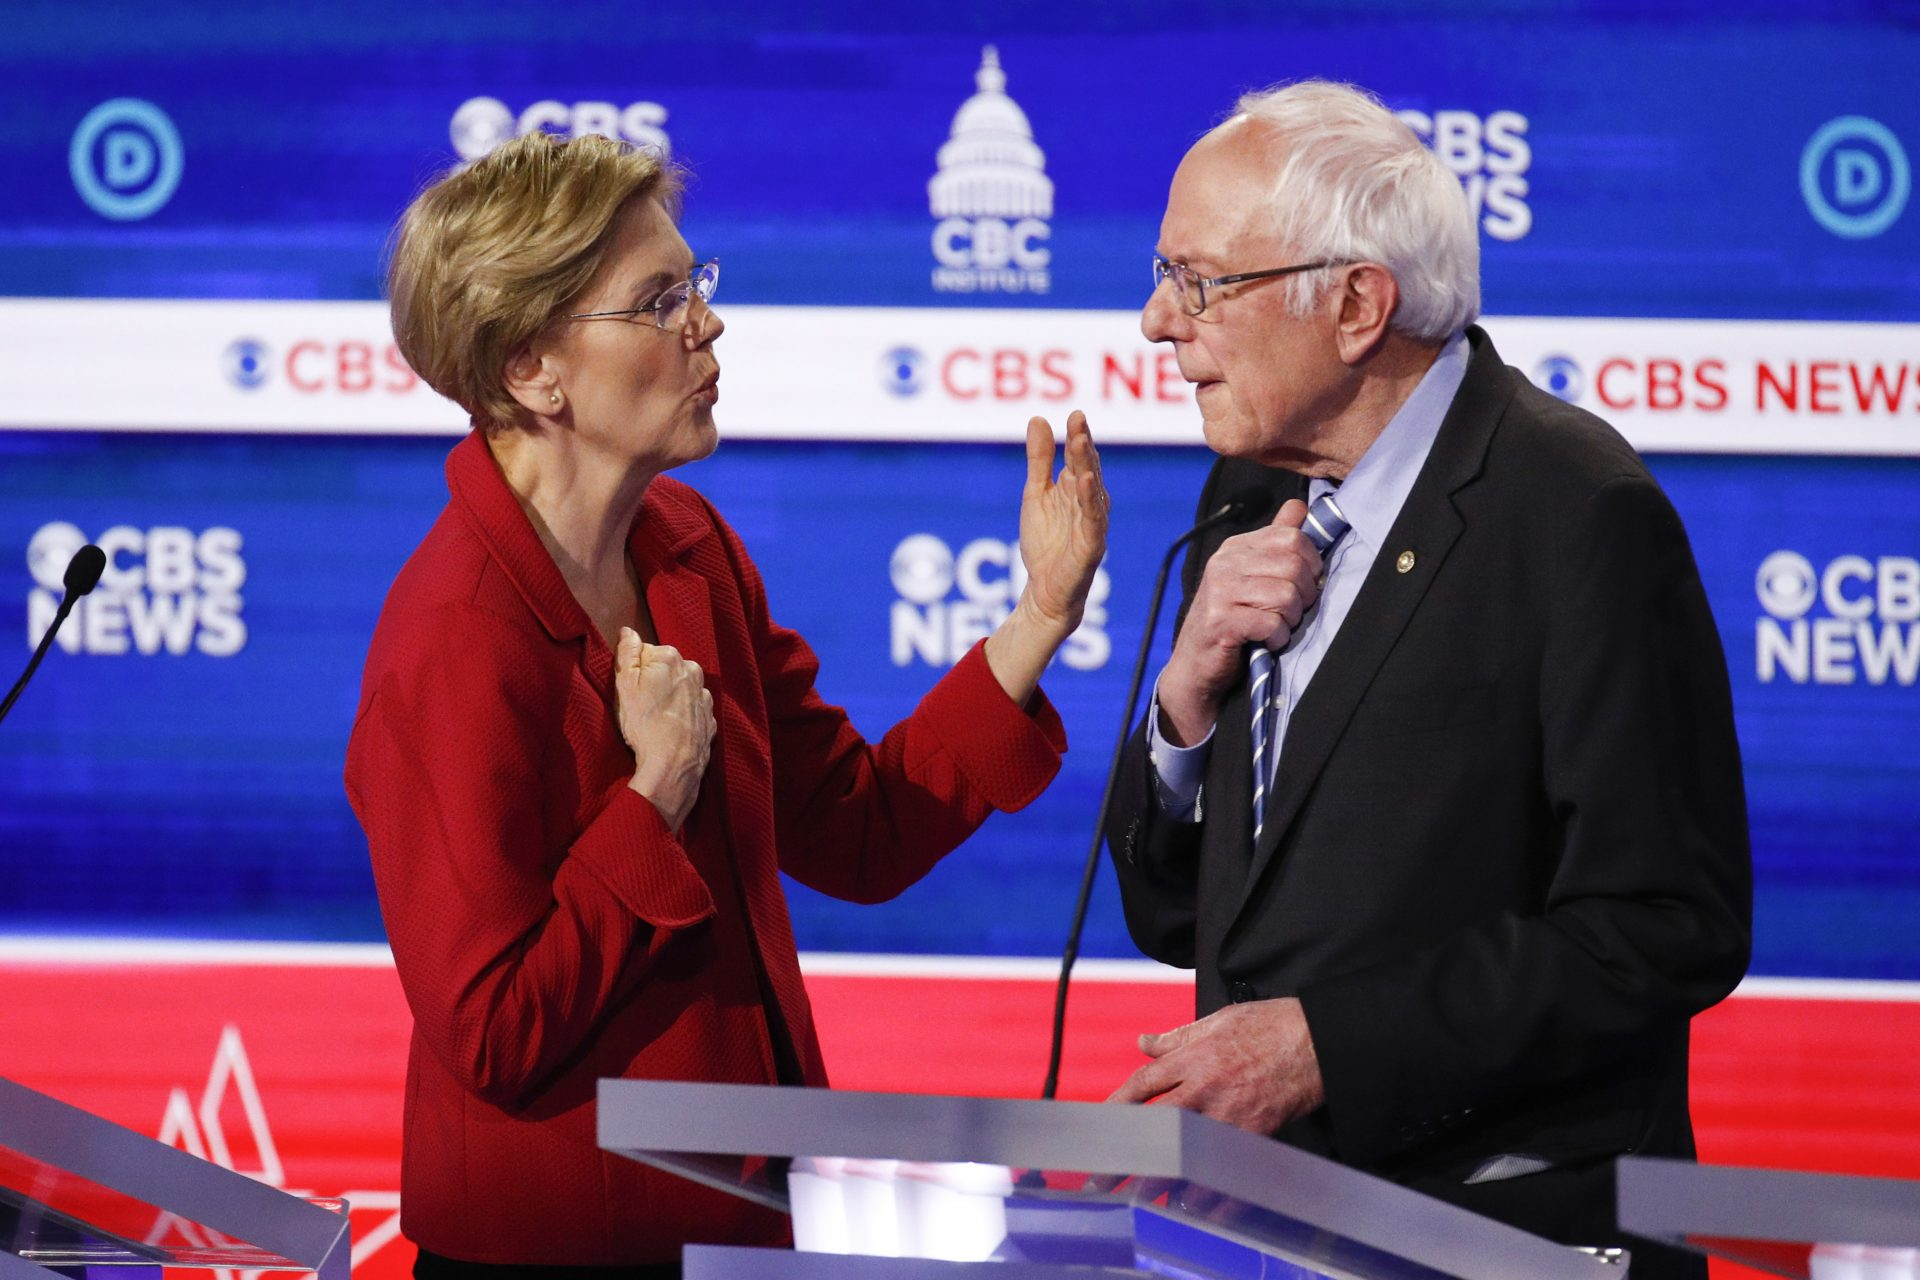 From left, Democratic presidential candidates, Sen. Elizabeth Warren, D-Mass., left, talks with Sen. Bernie Sanders, I-Vt., right, on stage after the Democratic presidential primary debate at the Gaillard Center, Tuesday, Feb. 25, 2020, in Charleston, S.C., co-hosted by CBS News and the Congressional Black Caucus Institute.